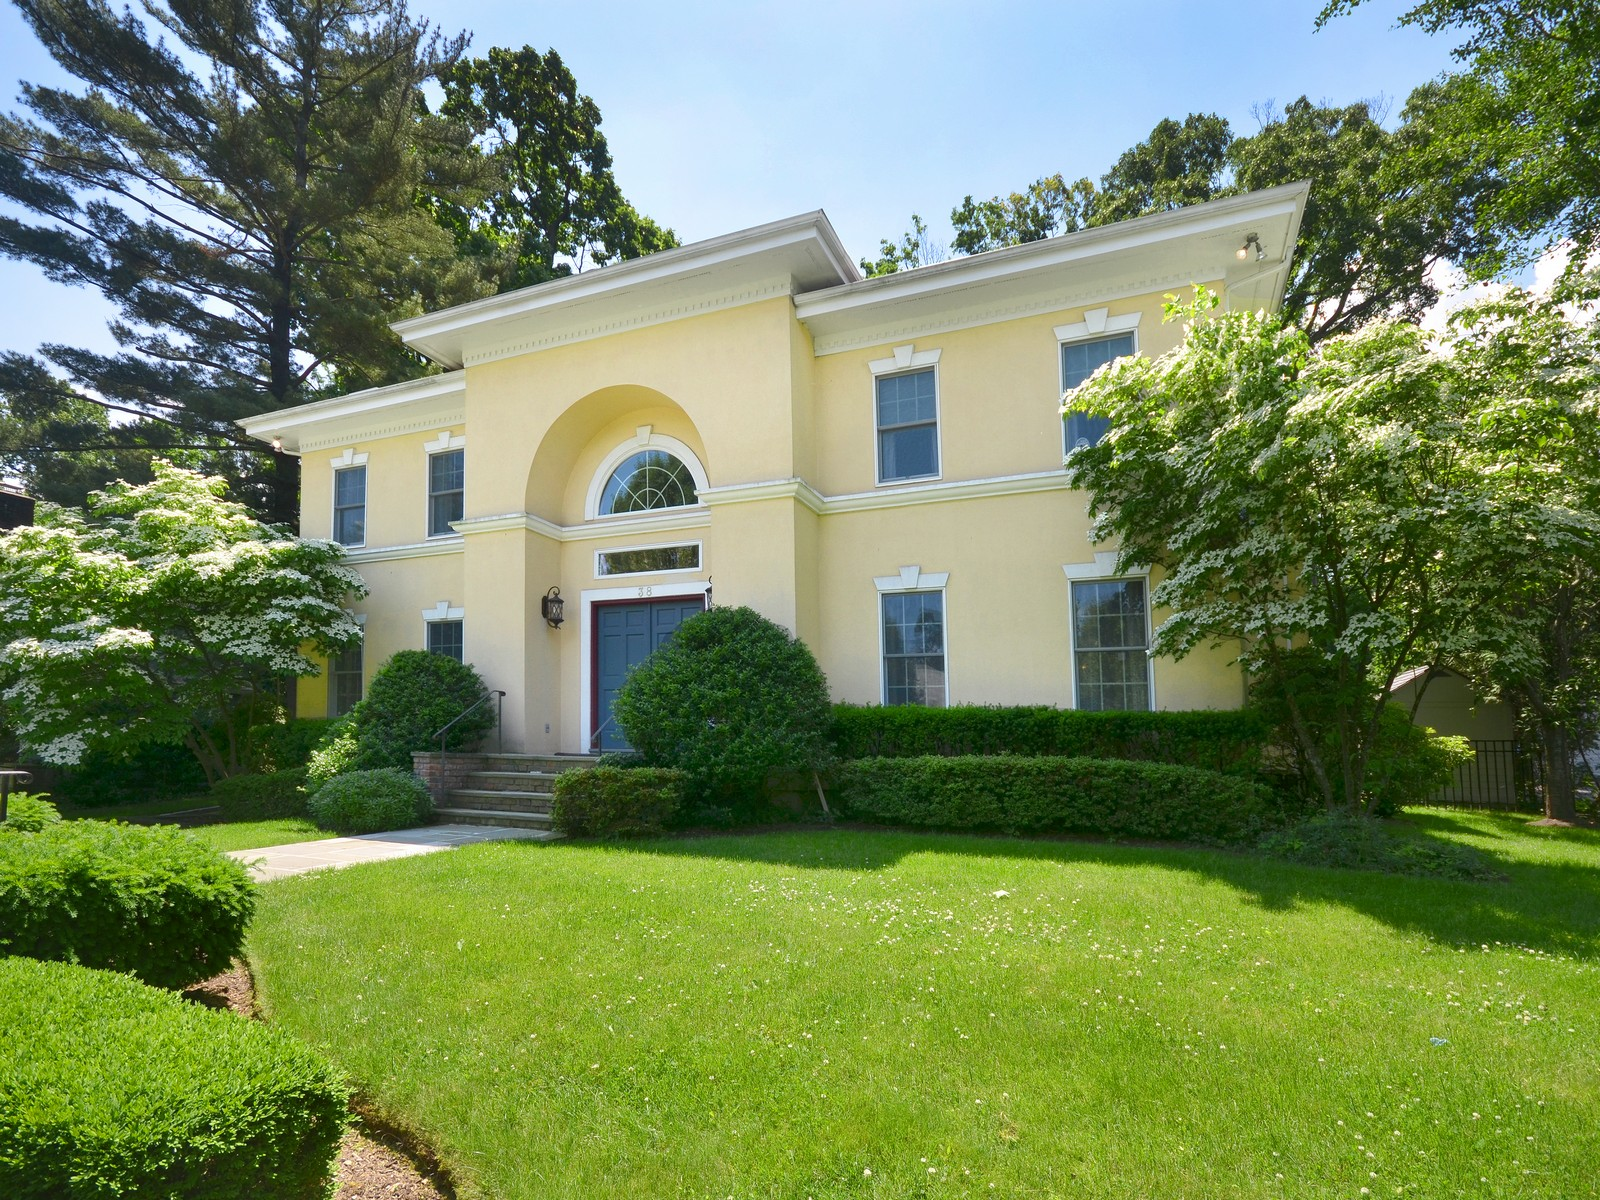 Single Family Home for Sale at Colonial 38 Reid Ave Port Washington, New York, 11050 United States